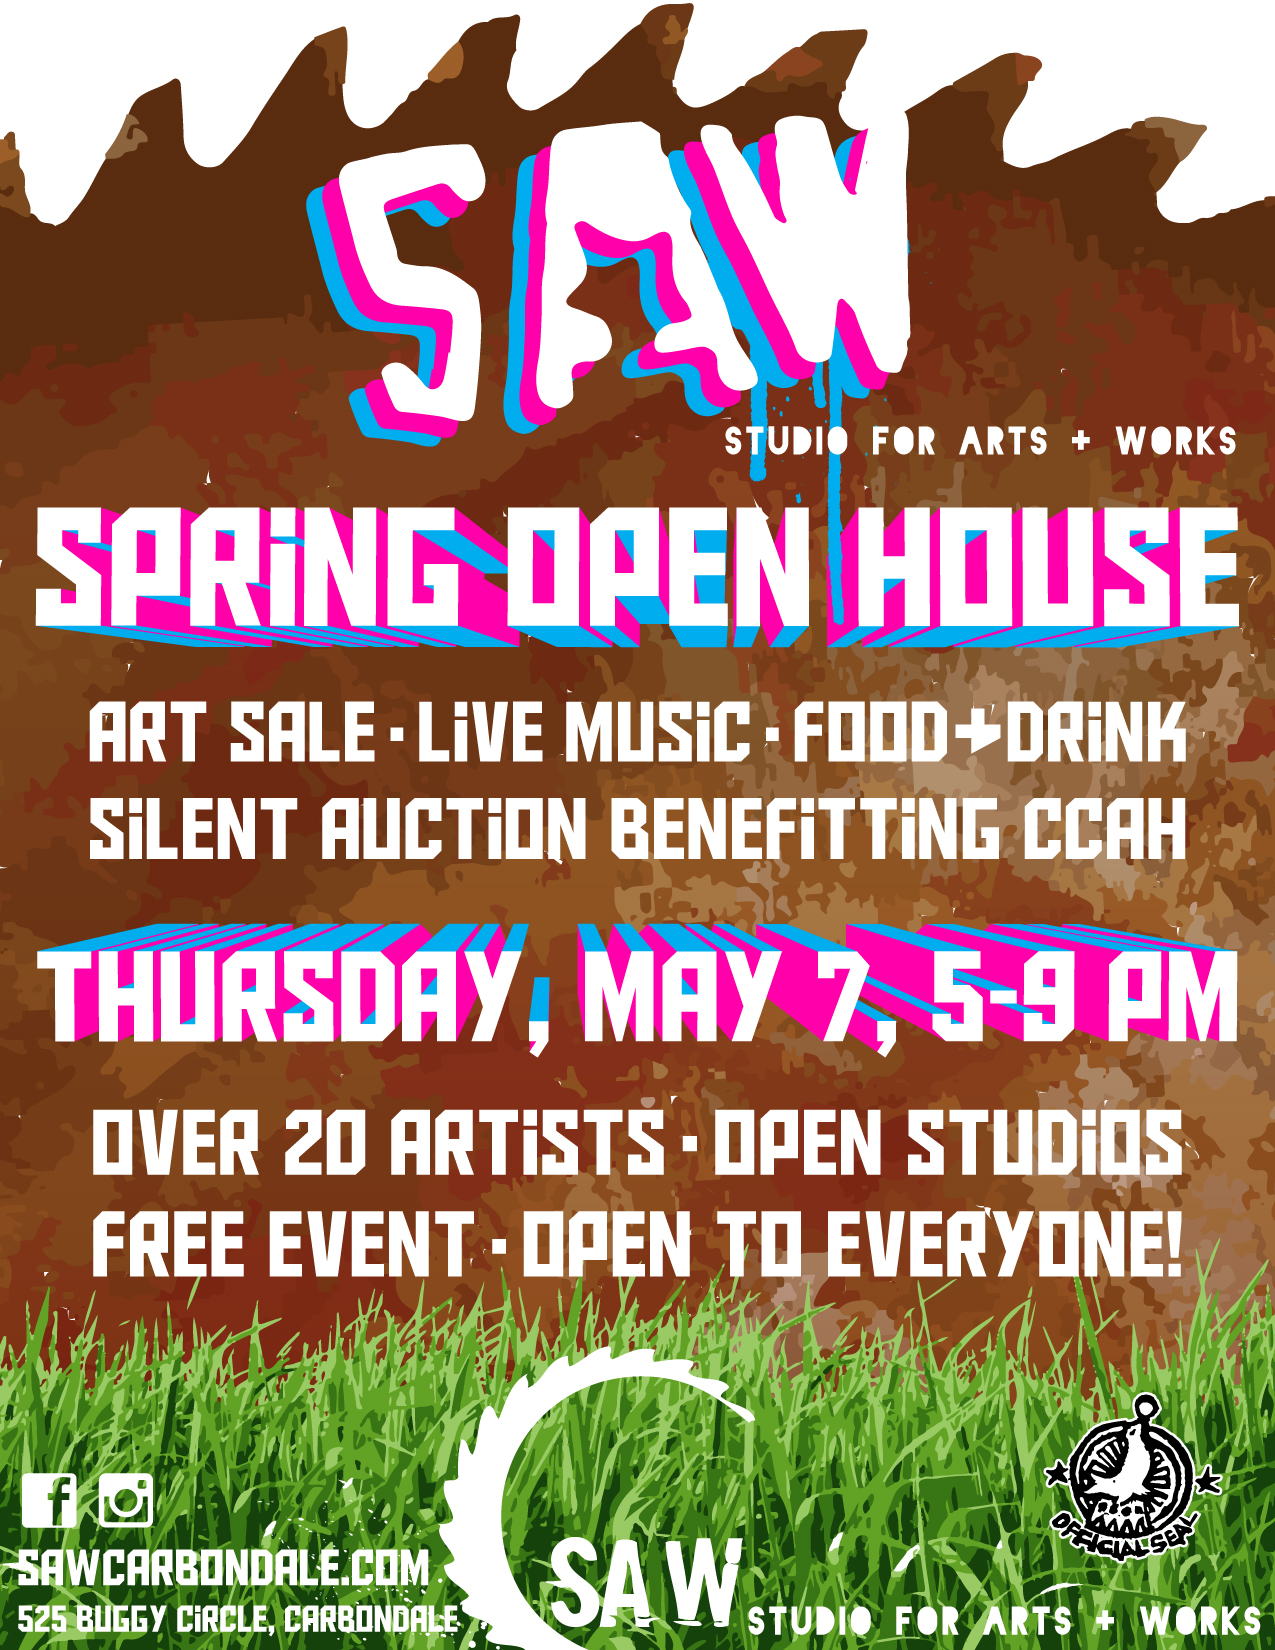 Spring Open House Sara From Sincerly Sara D: S.A.W. STUDIO FOR ARTS AND WORKS